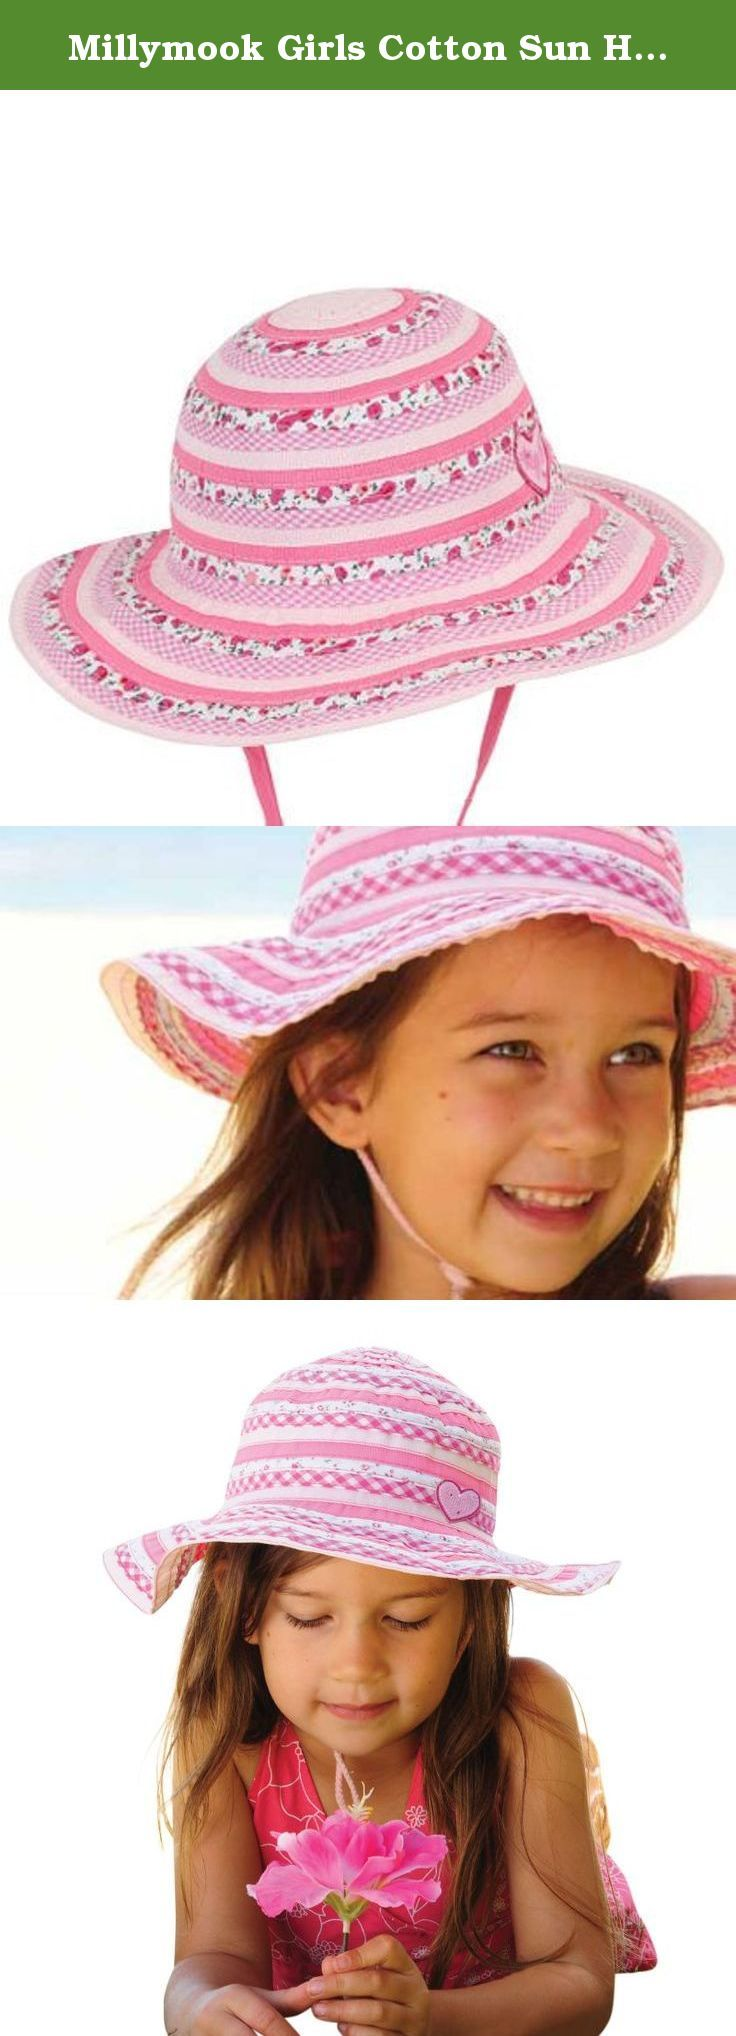 Millymook Girls Cotton Sun Hat Sweetheart -Pink, Upf50+ (2-5 Year Olds). Our Tradition of high quality, fashionable head wear at affordable prices continues. The Hat features Ultraviolet Protection Factor UPF 50+ Excellent Sun Protection UPF- What does it mean? UVR is present in sunlight. Sunburn is one sign that your skin has been exposed to too much UVR. Overexposure to UVR over many years can cause more serious health problems such as skin cancers or cataracts. Clothing that is…